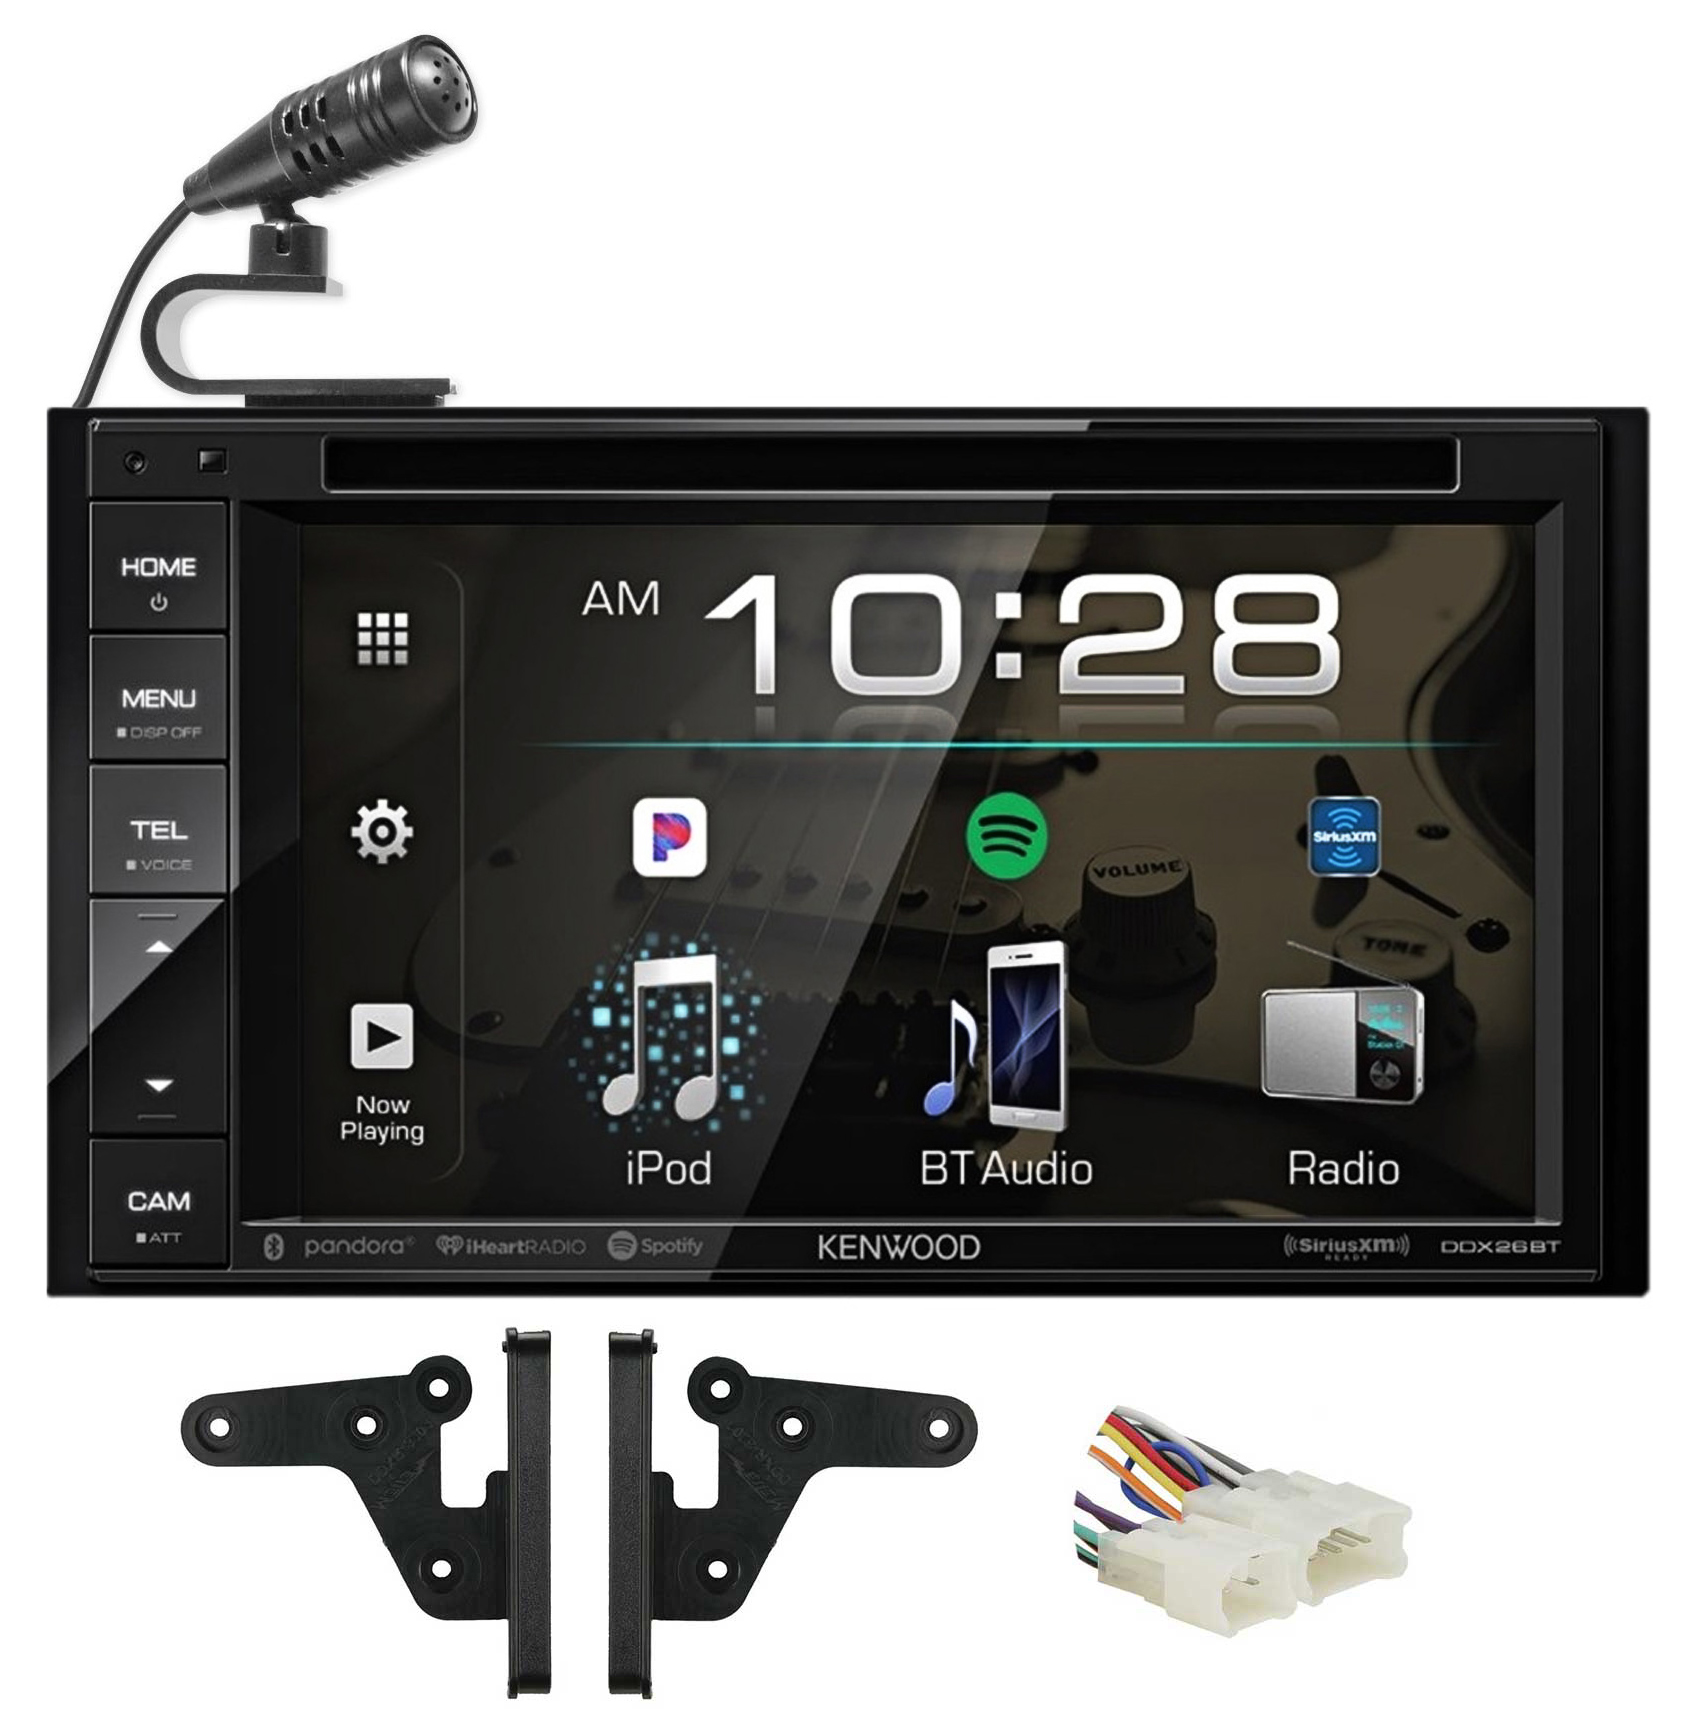 Kenwood DVD/iPhone/Android/Spotify/Bluetooth Receiver For 2003 Toyota Tundra